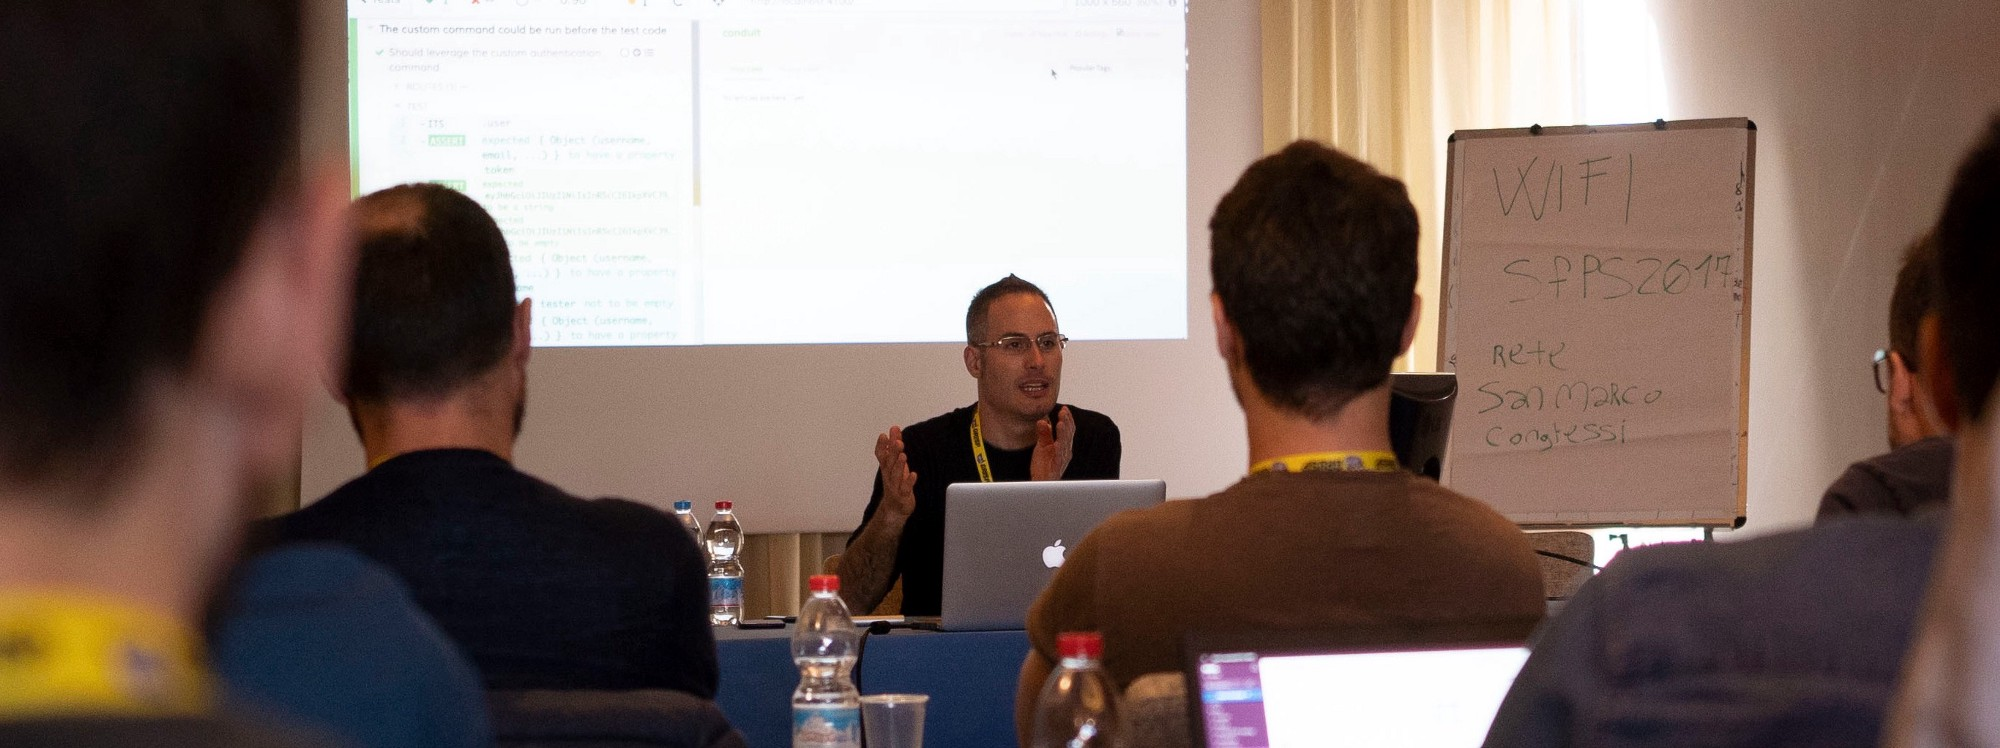 Me teaching at the Italian ReactJSDay conference. Thanks to Jaga Santagostino for the photo.